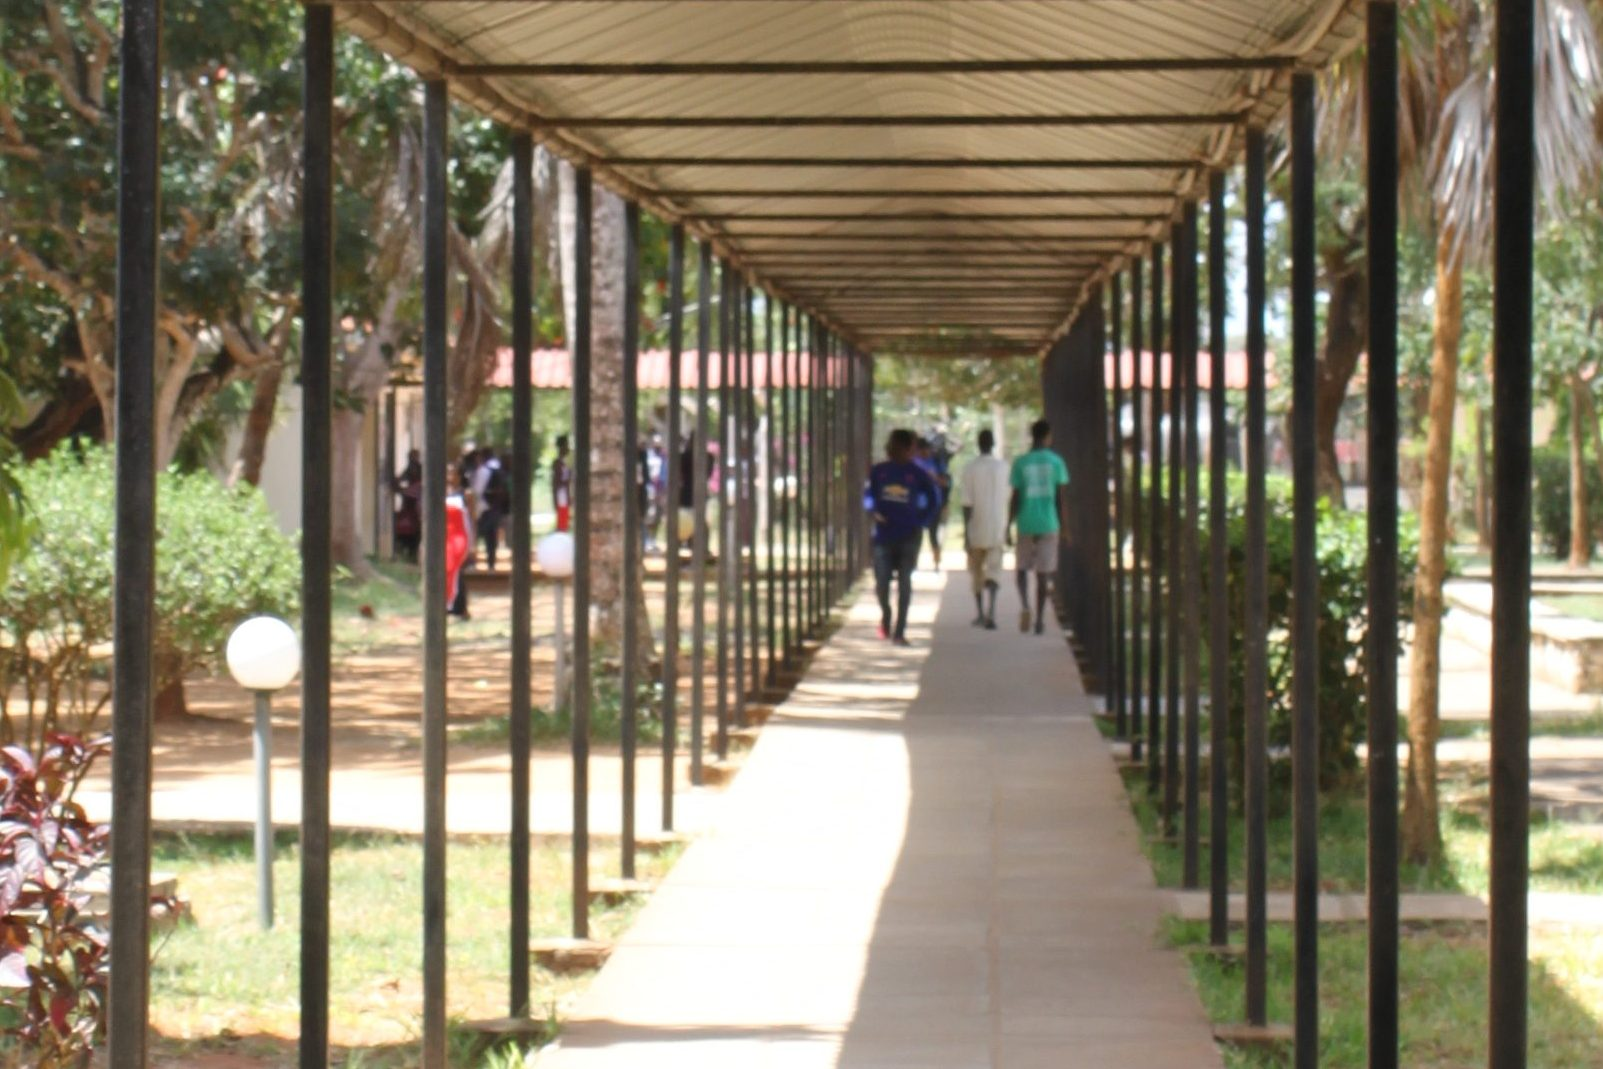 Learn more about other ssDNAfrica activities taking place at Pwani University.